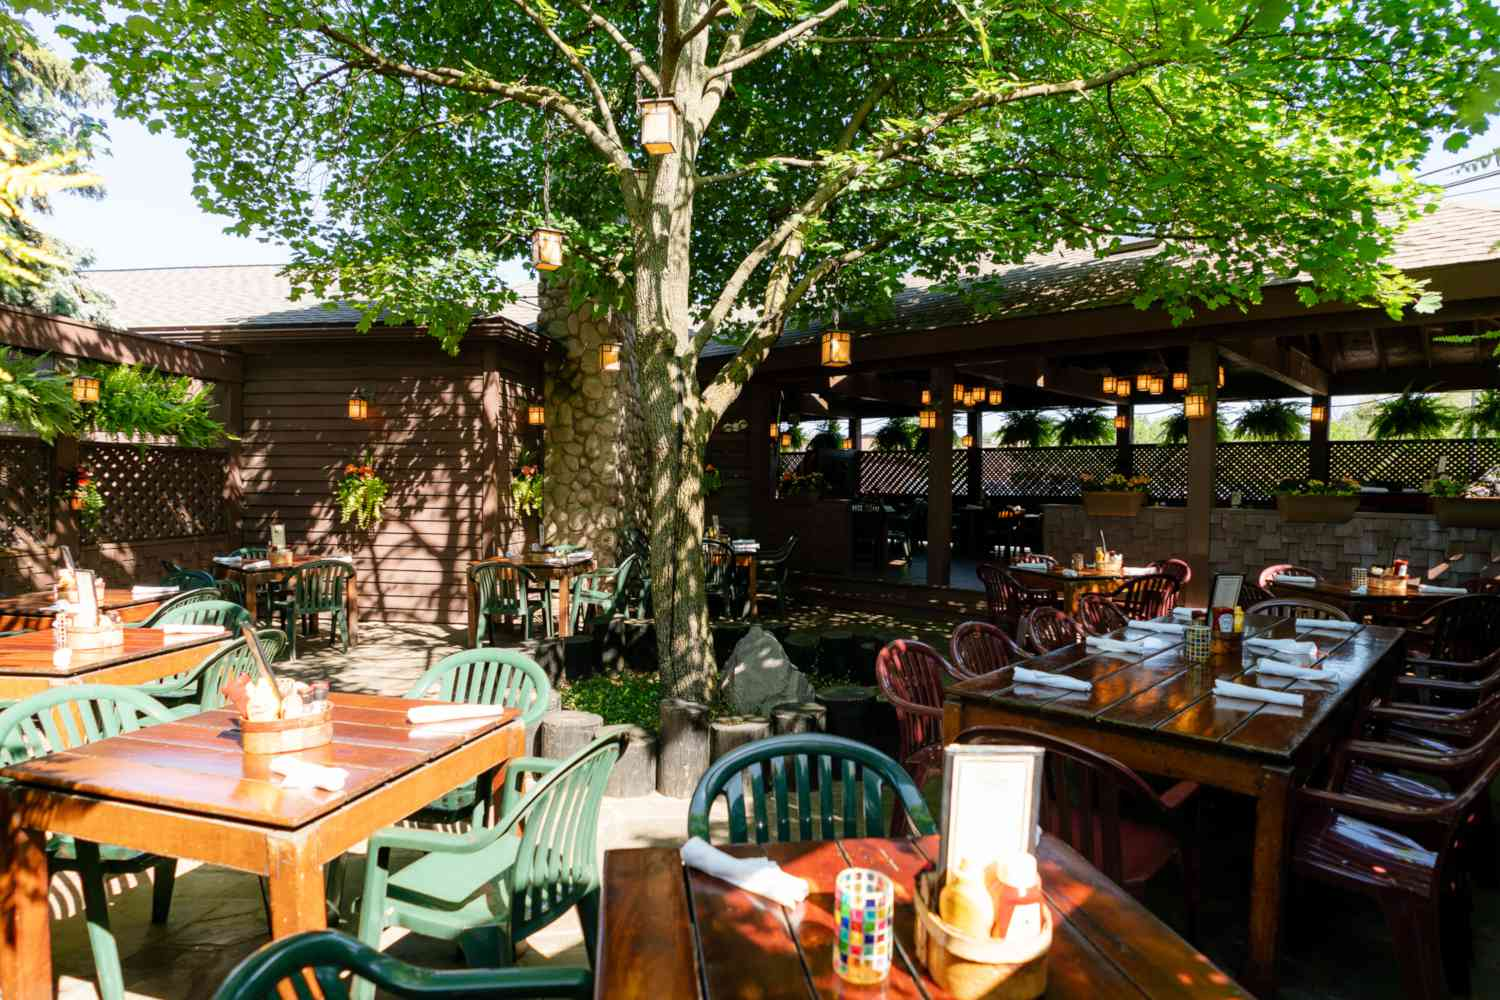 The Moose Preserve outdoor dining area